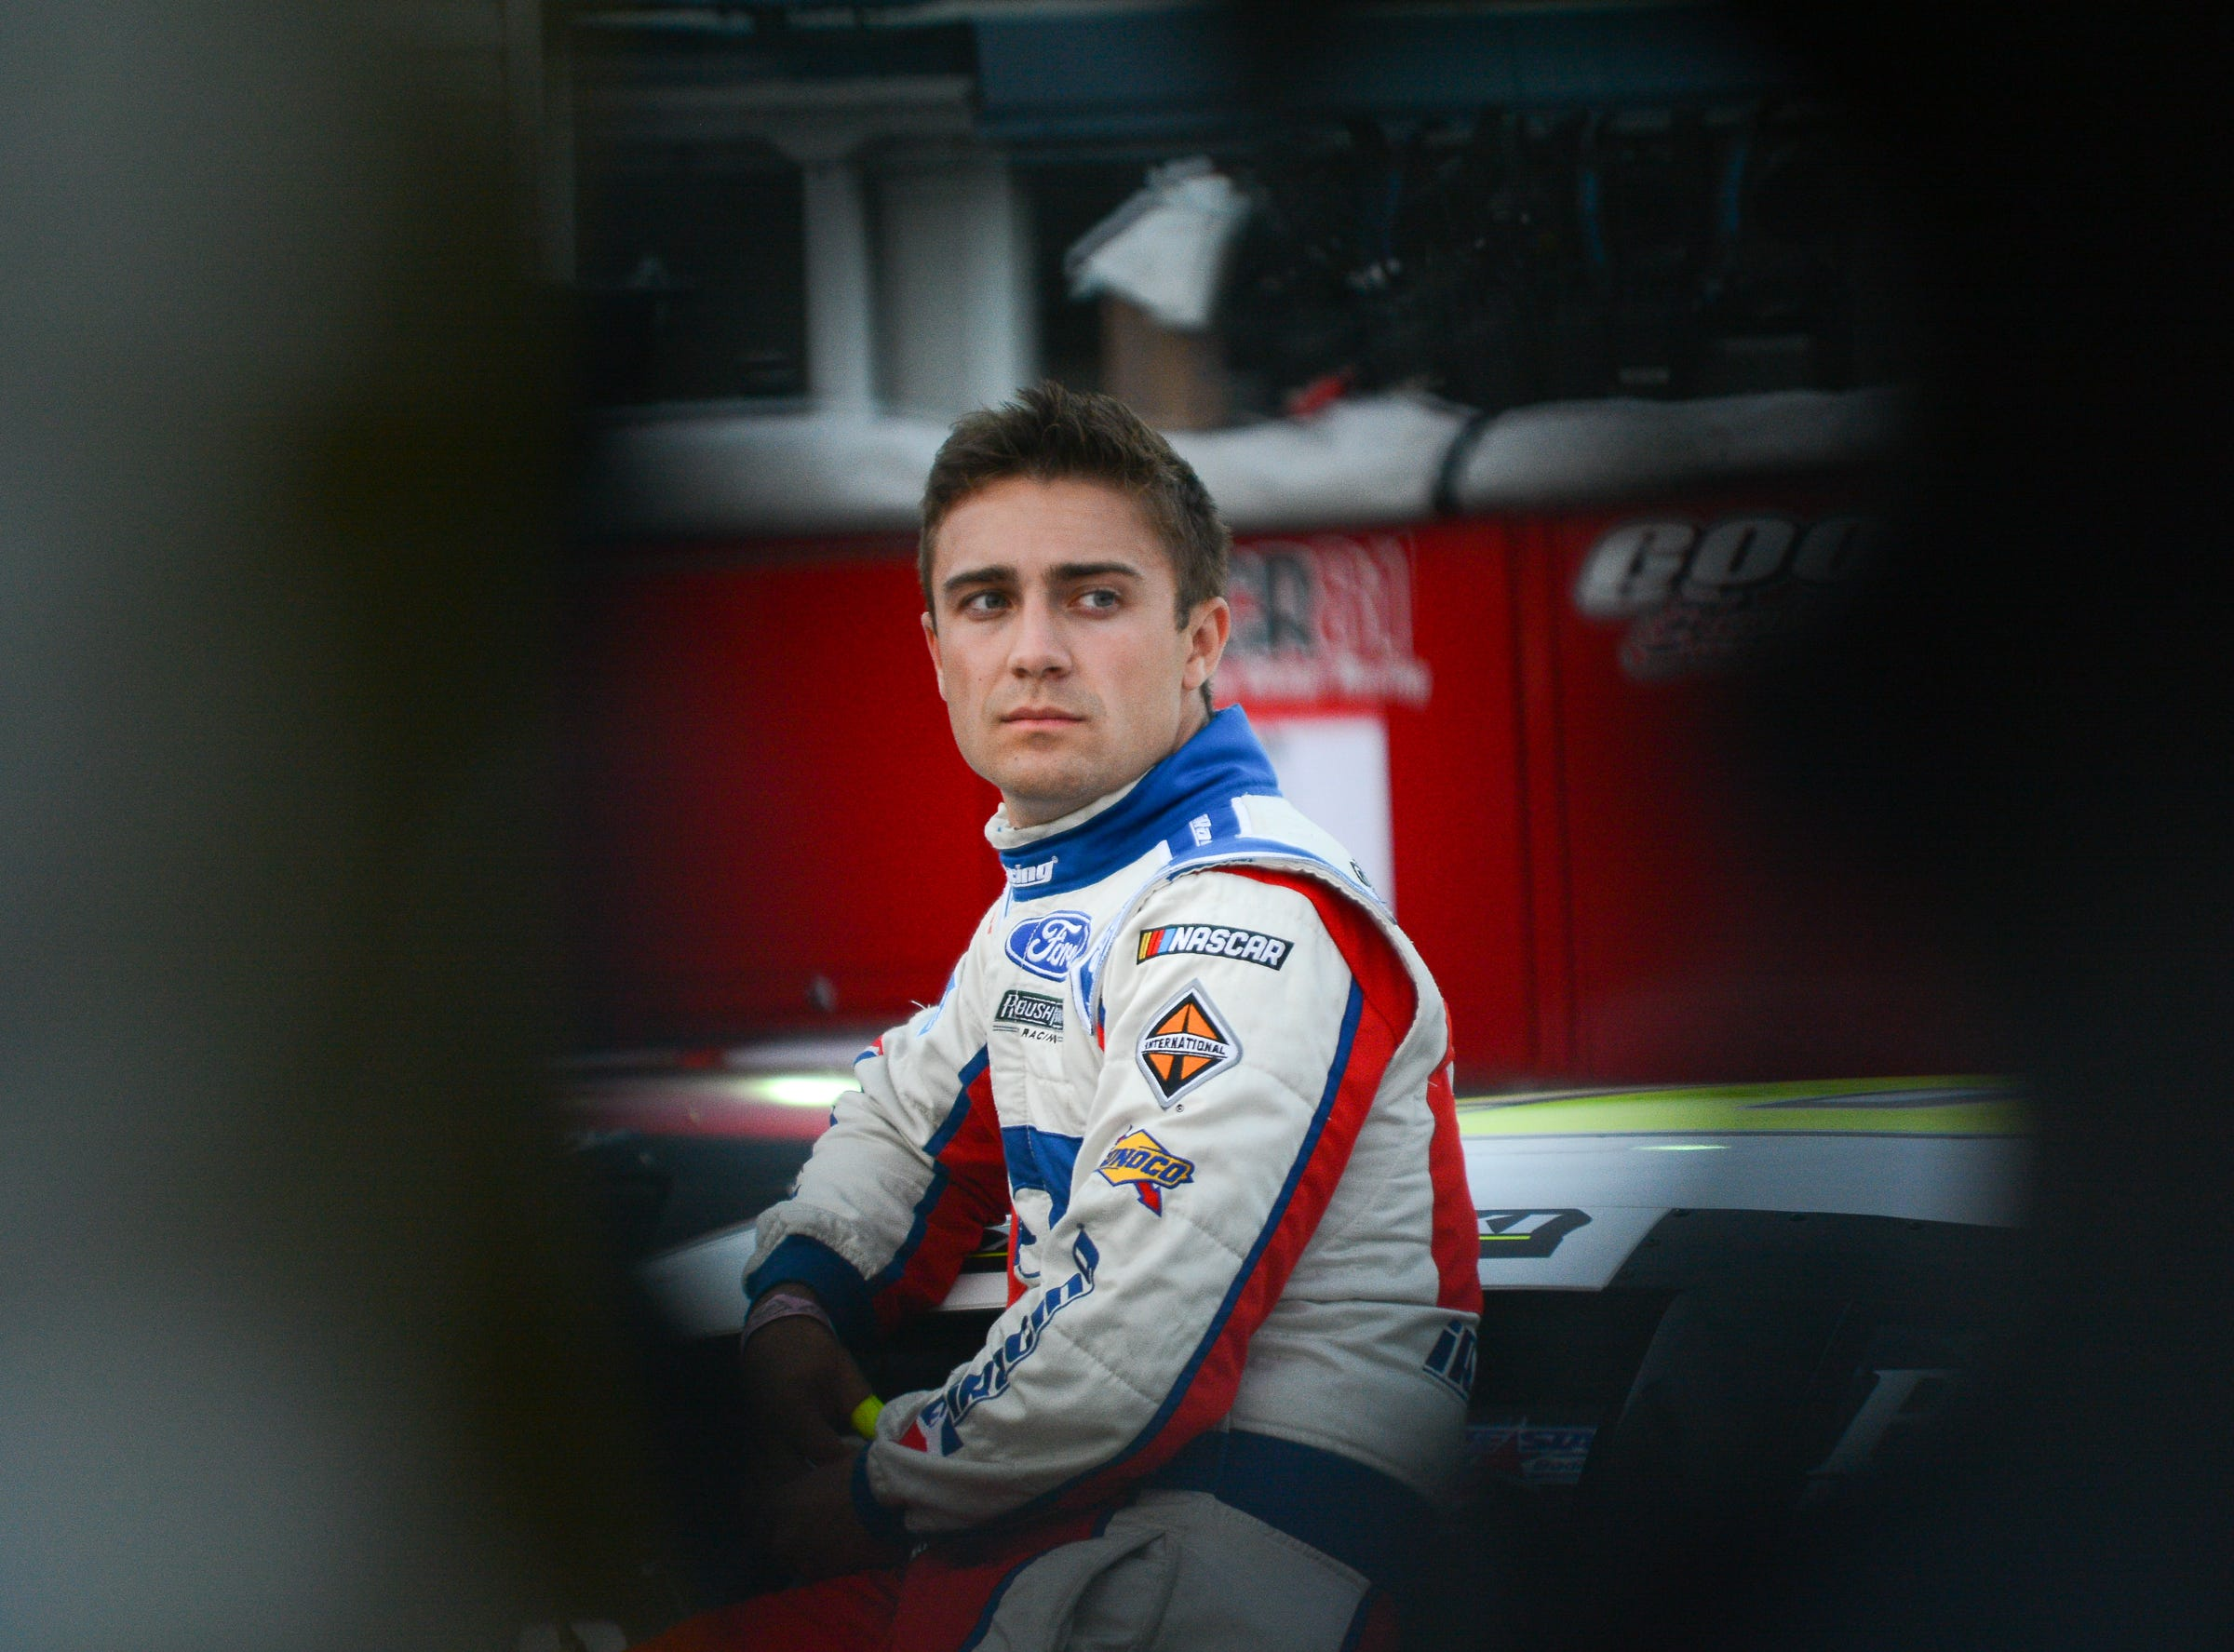 NASCAR development driver Ty Majeski awaits the start of the ARCA Midwest Tour Dixieland 250 on Tuesday, August 7, 2018, at Wisconsin International Raceway in Kaukauna, Wis.